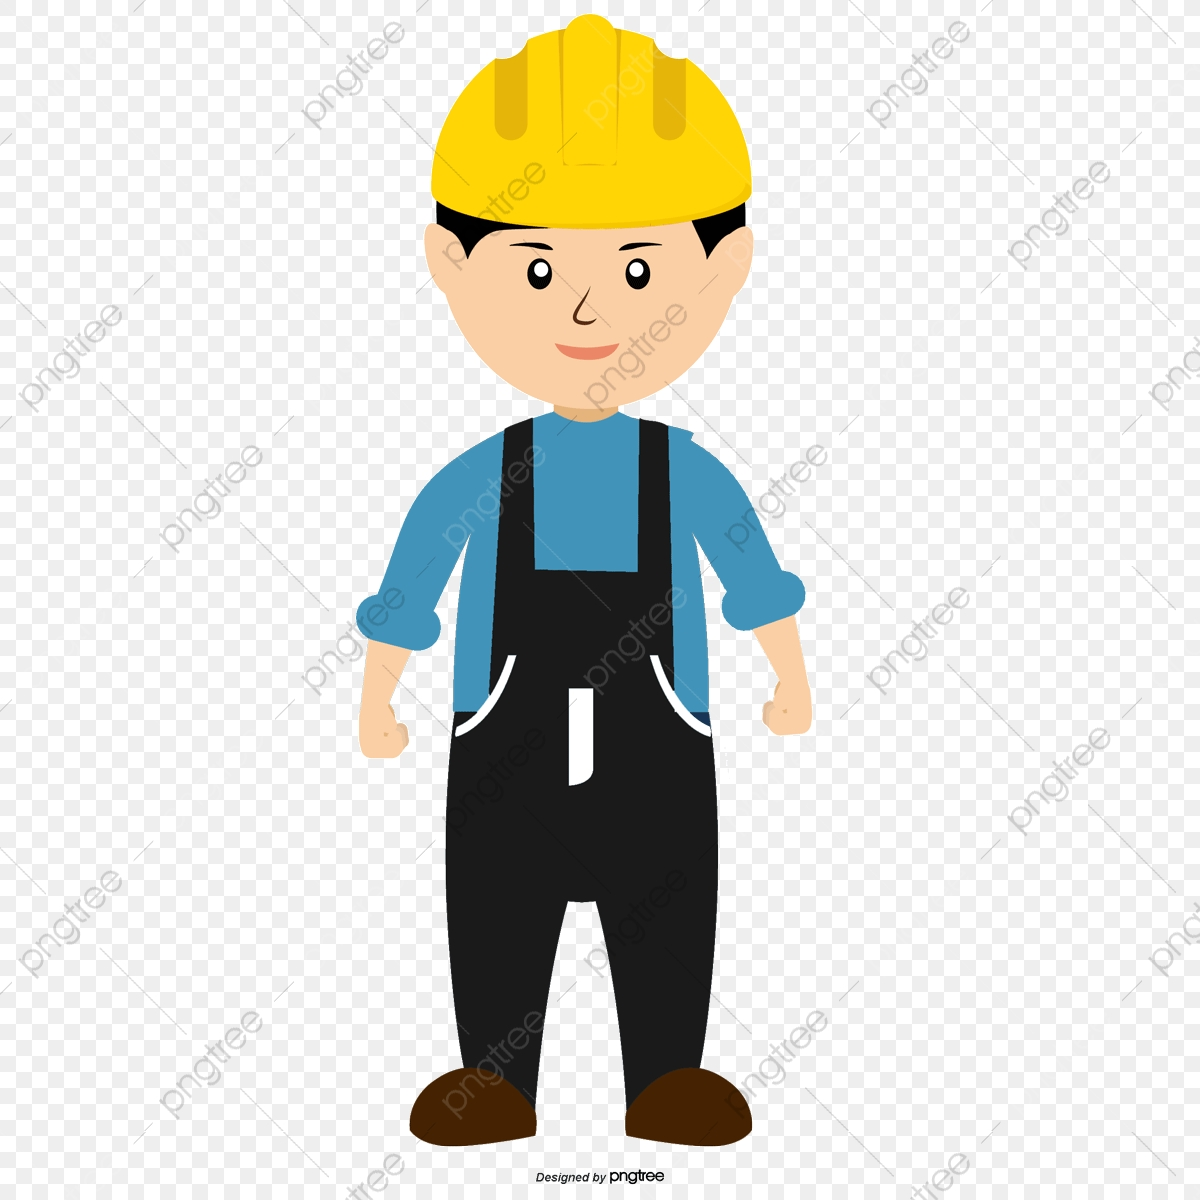 svg black and white library Wear uniforms for maintenance. Civil clipart industrial safety.